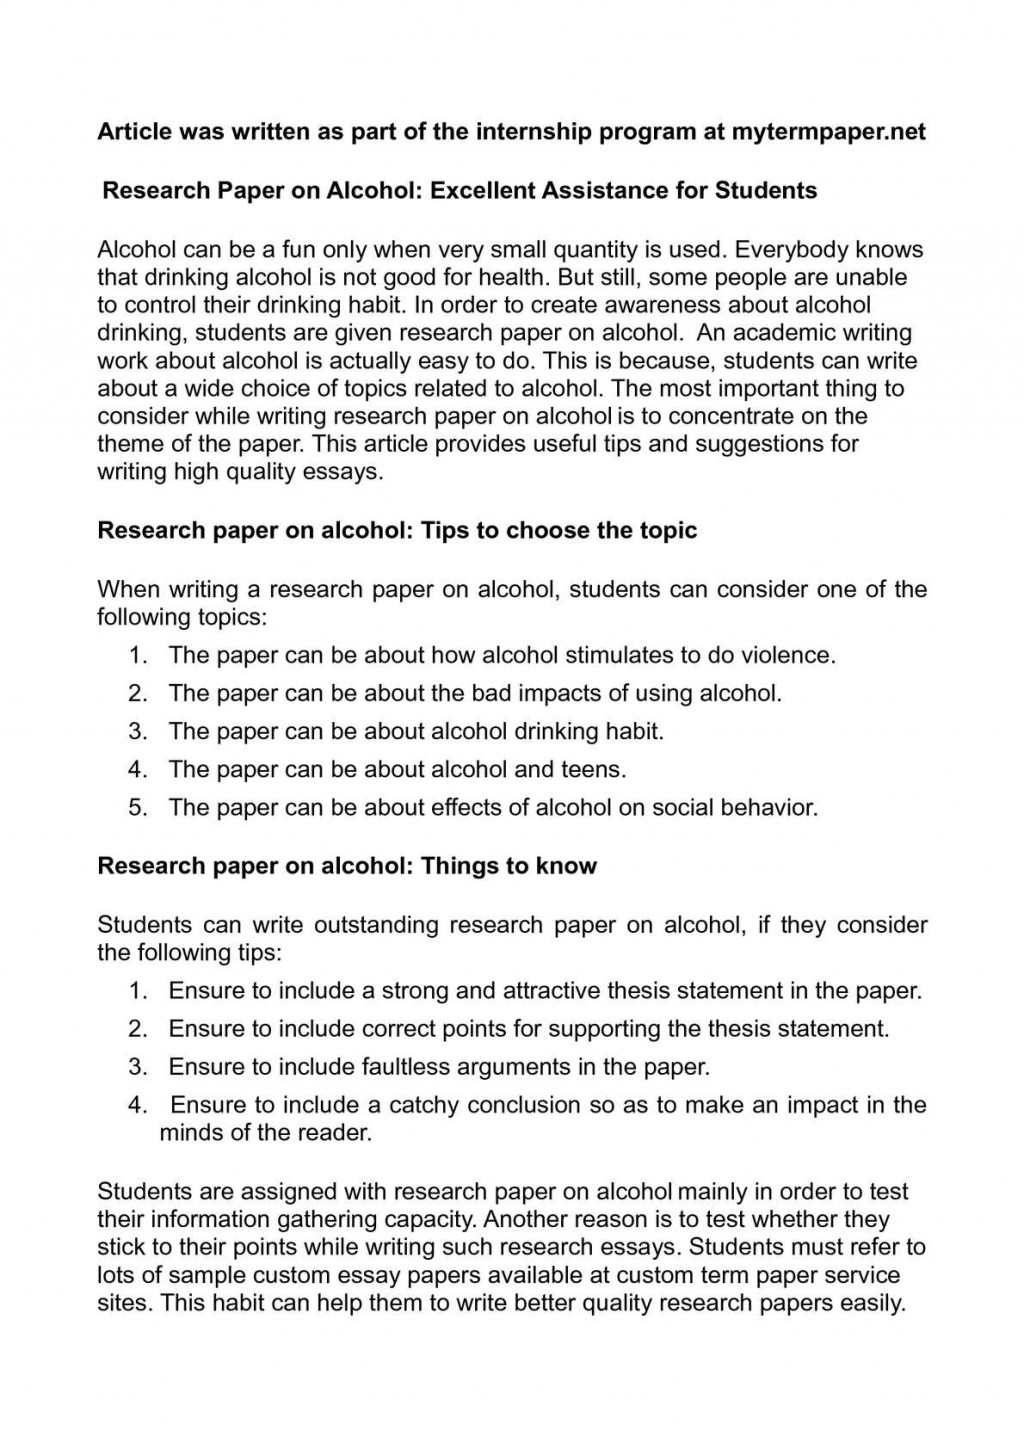 001 Research Paper On Alcohol Awesome Articles Substance Abuse Alcoholic Parents Use Disorder Large